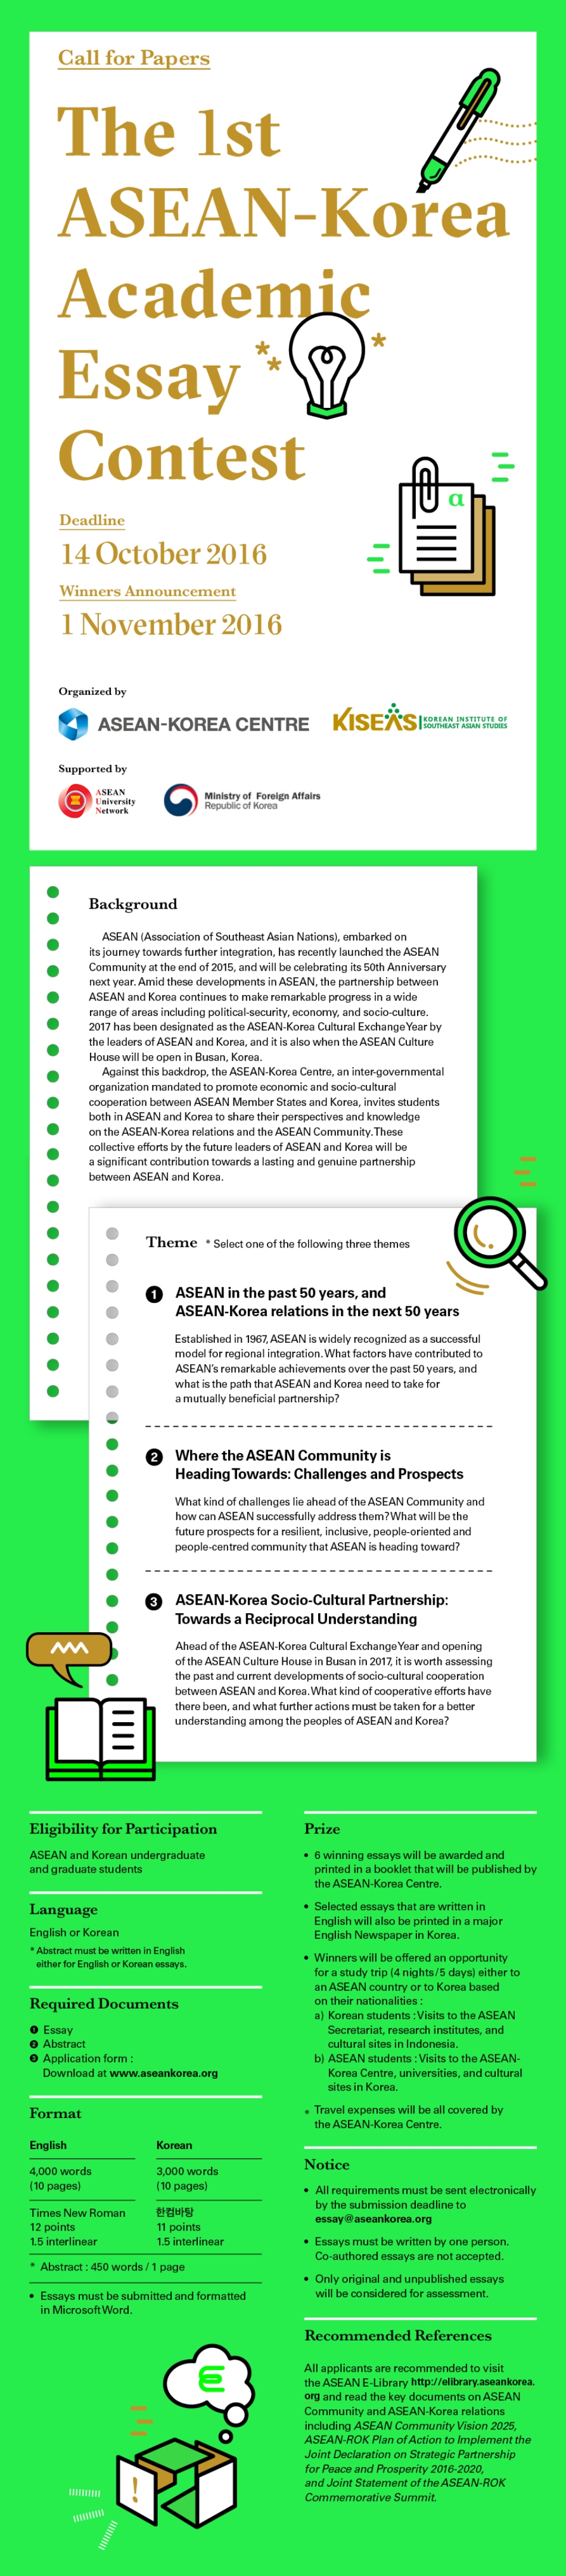 korea essay the kinder side of urban korea a photo essay from  asean korea centre the st asean korea academic essay contest call for papers